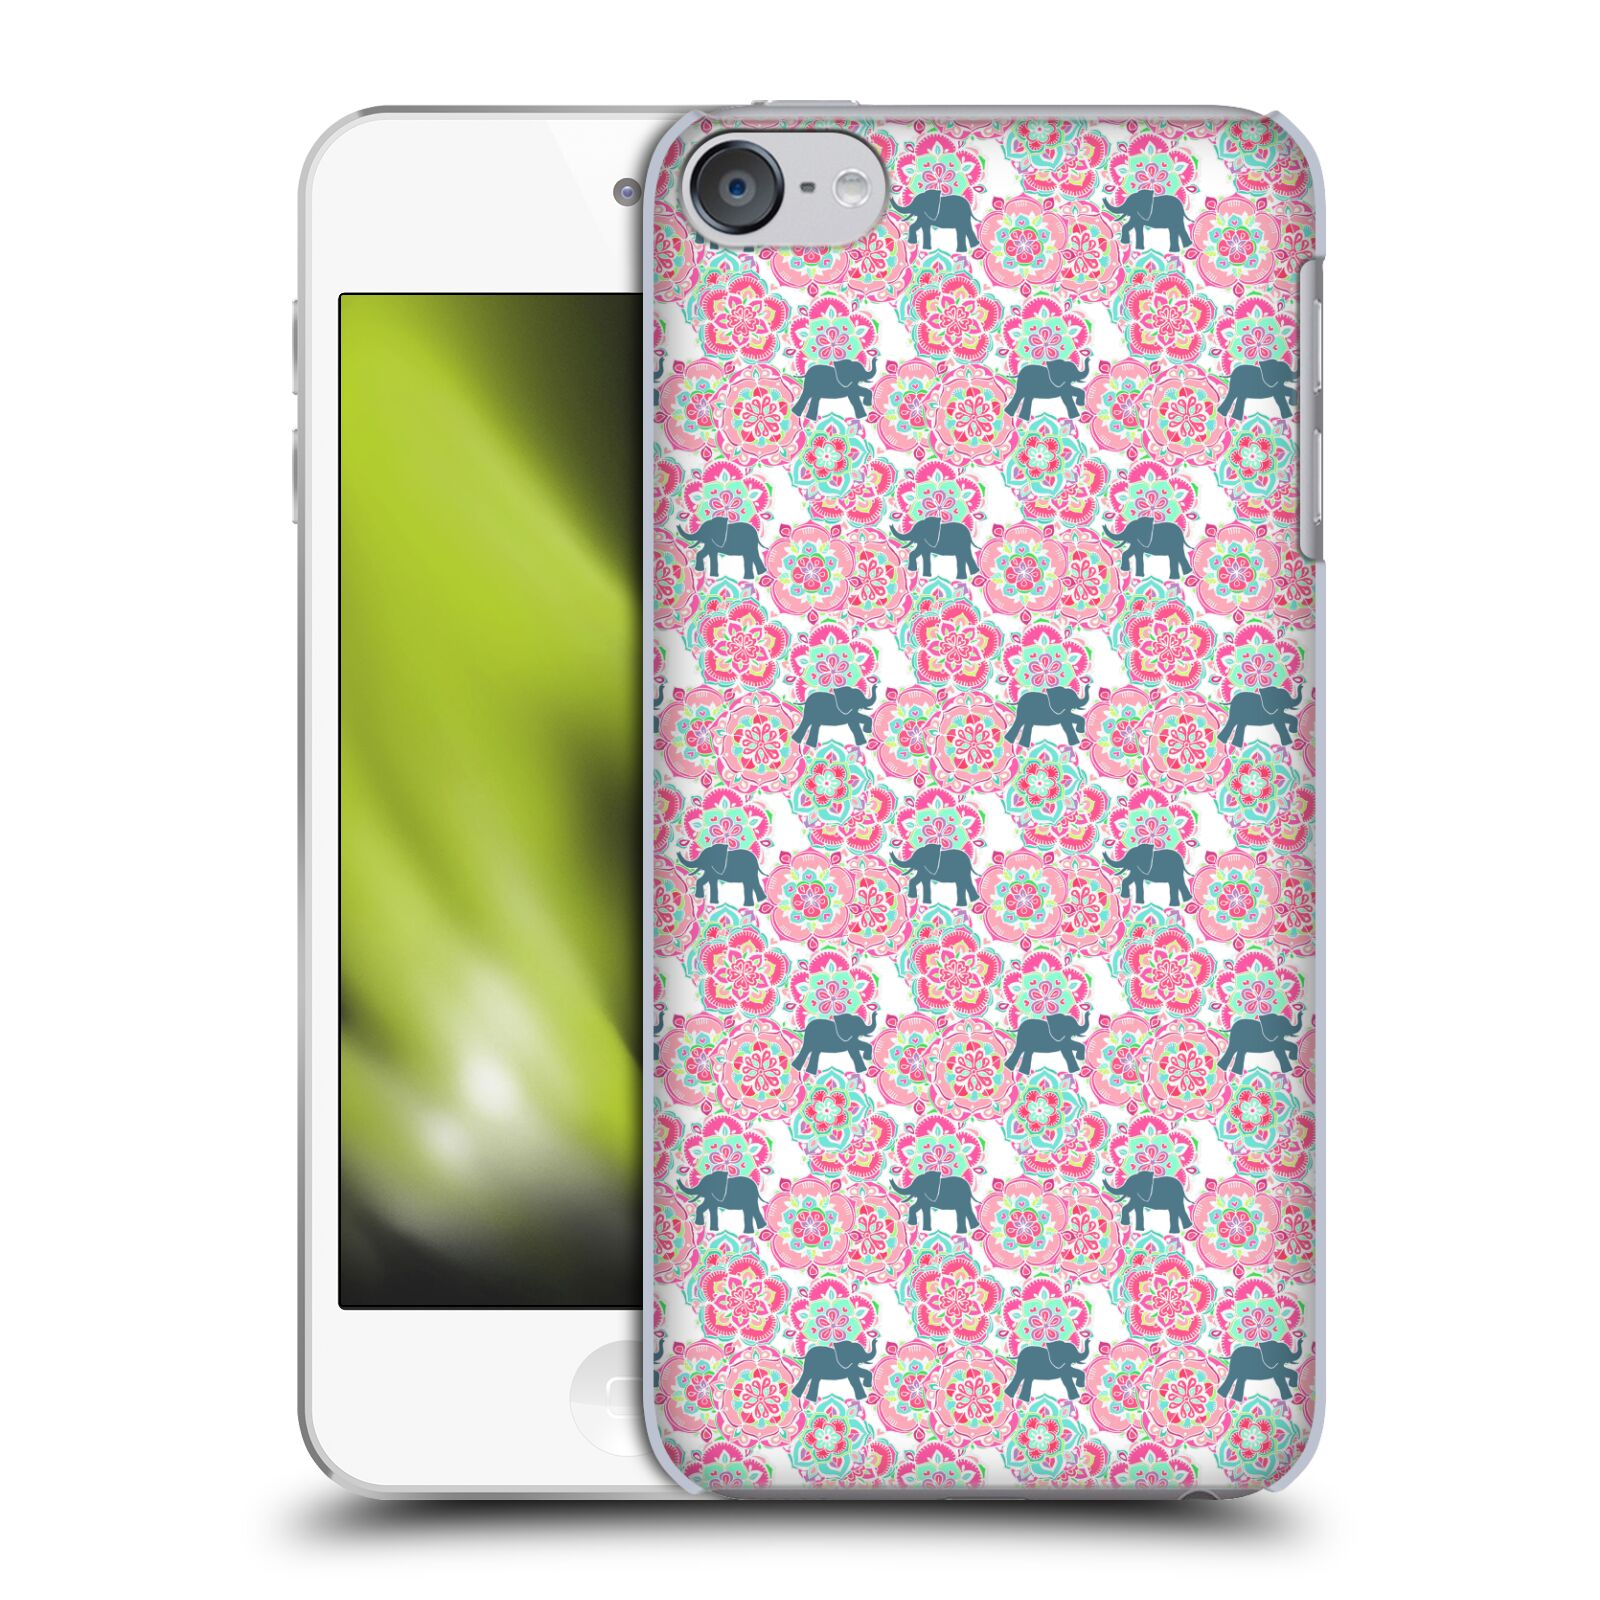 OFFICIAL-MICKLYN-LE-FEUVRE-ANIMALS-HARD-BACK-CASE-FOR-APPLE-iPOD-TOUCH-MP3